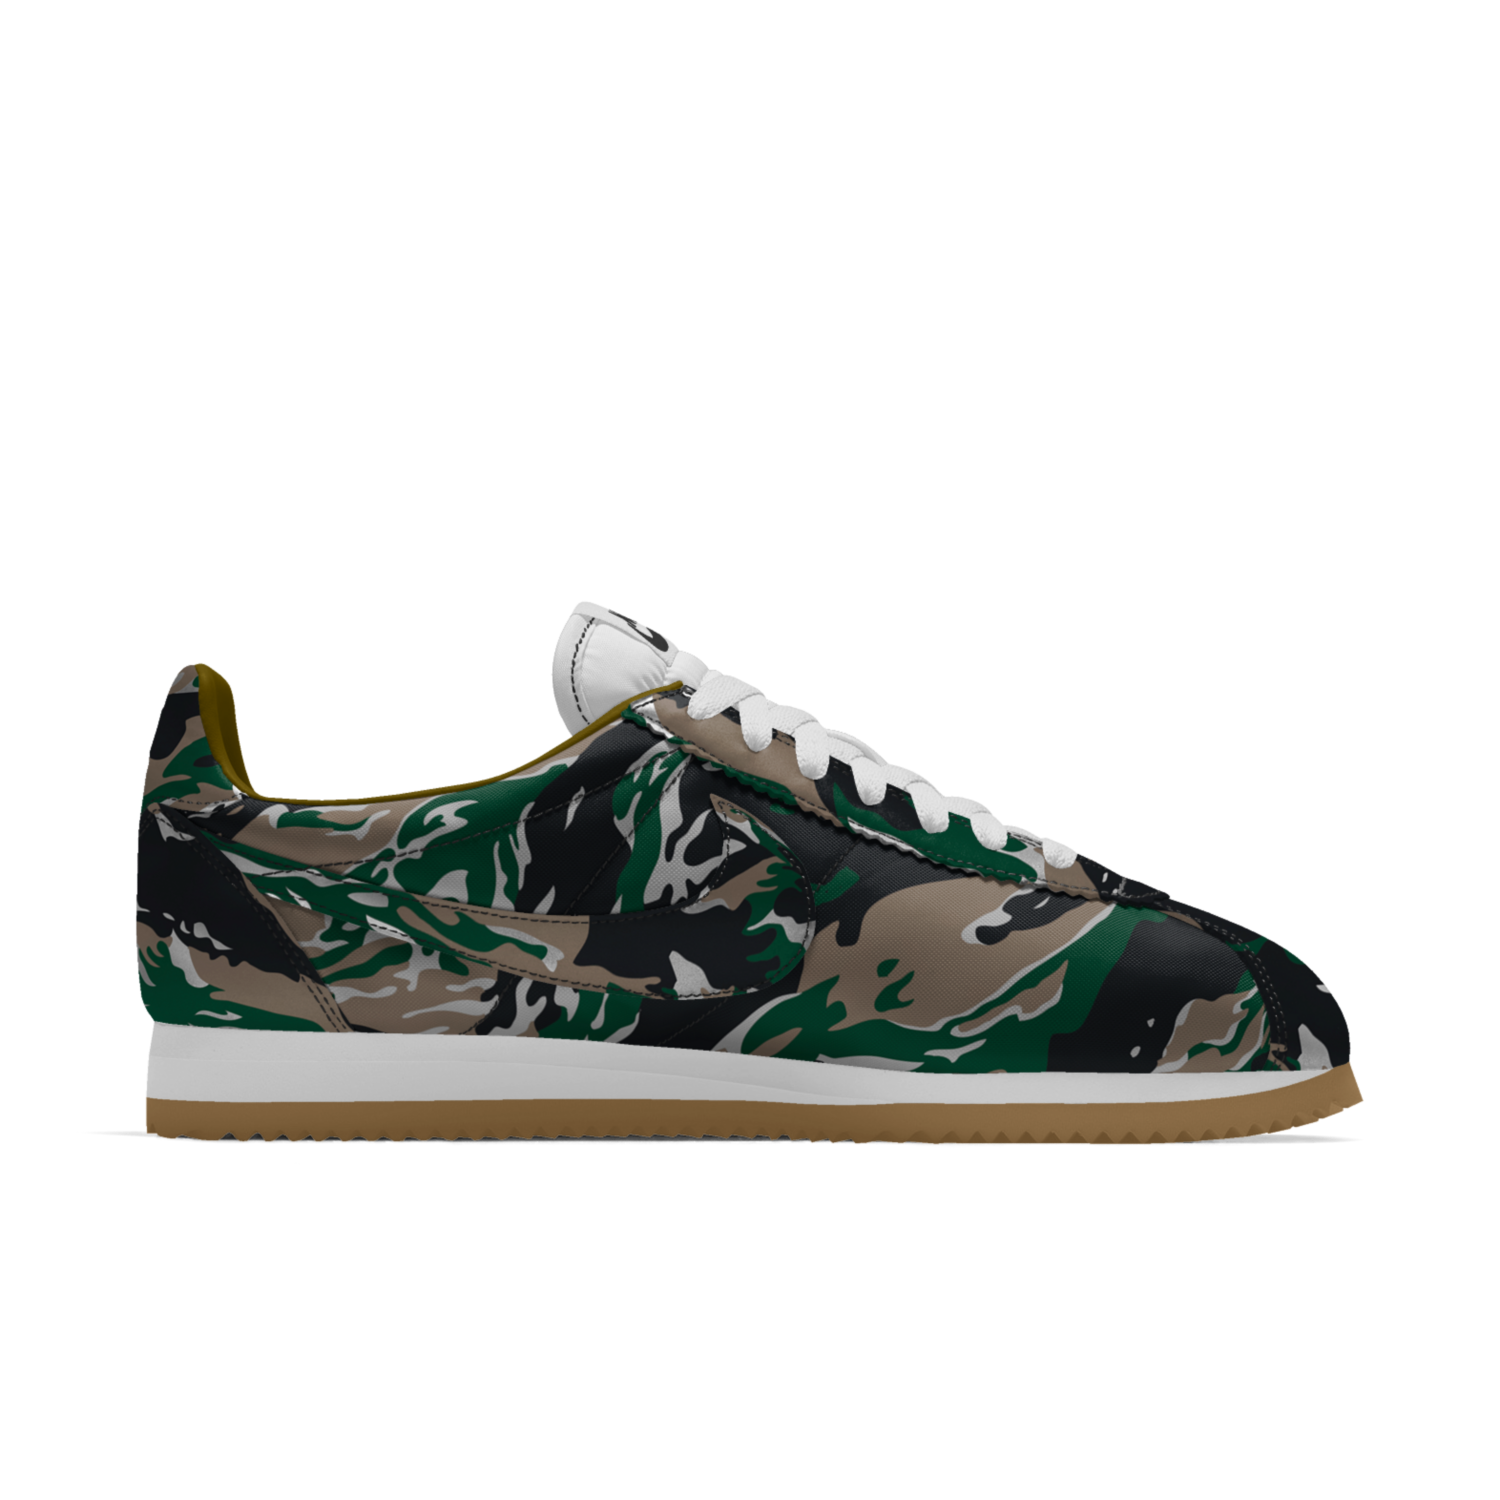 Nike Cortez iD Camo by Sneakers Addict #Nike #Inside #Sneakers